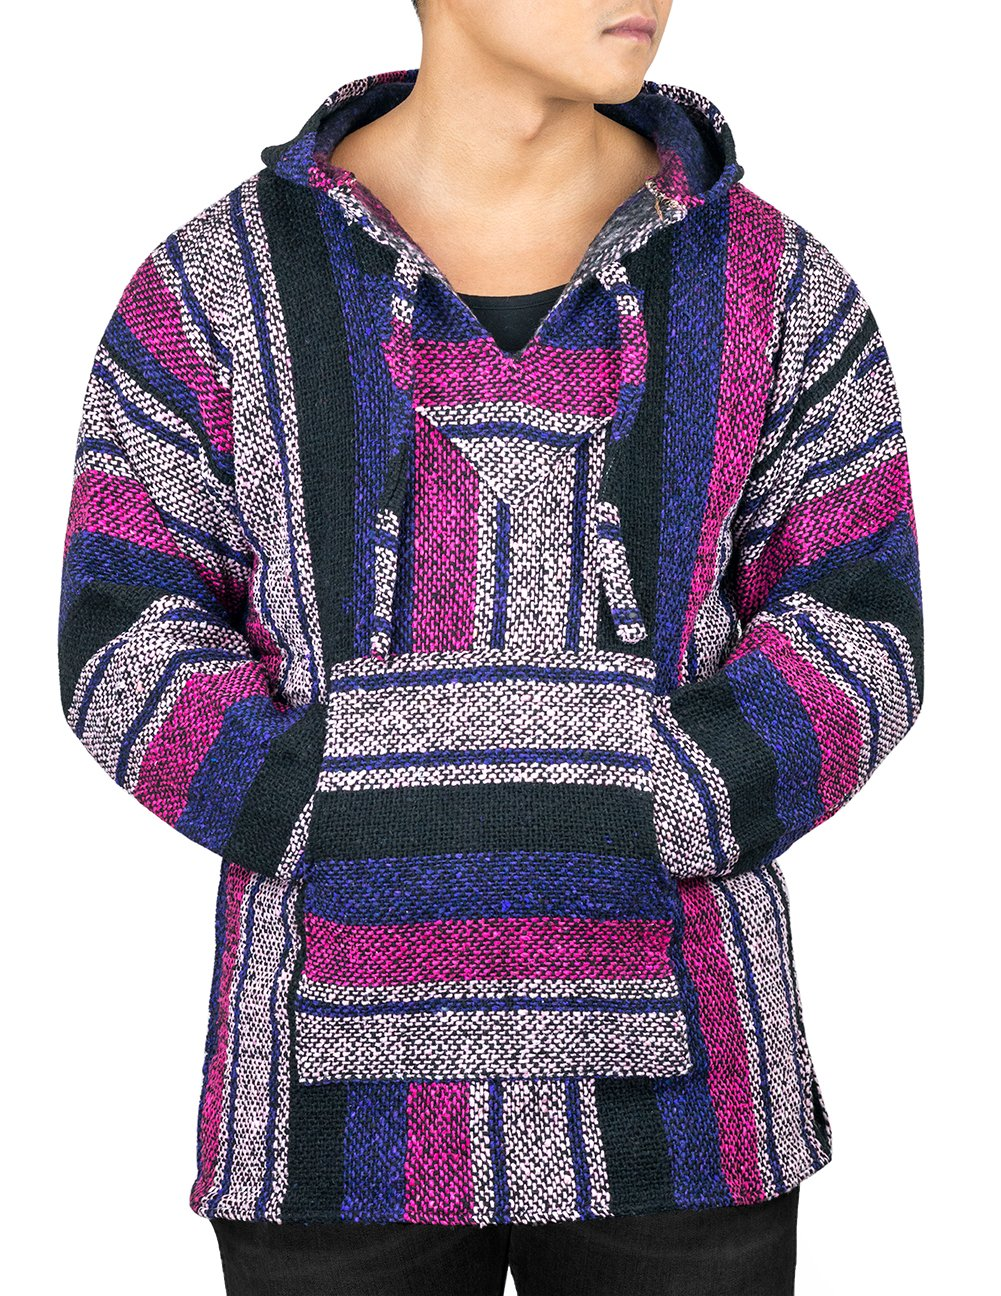 Unisex Mexican Jerga Hoodie - X-Large, Purple/Pink CLEVERBRAND INC.